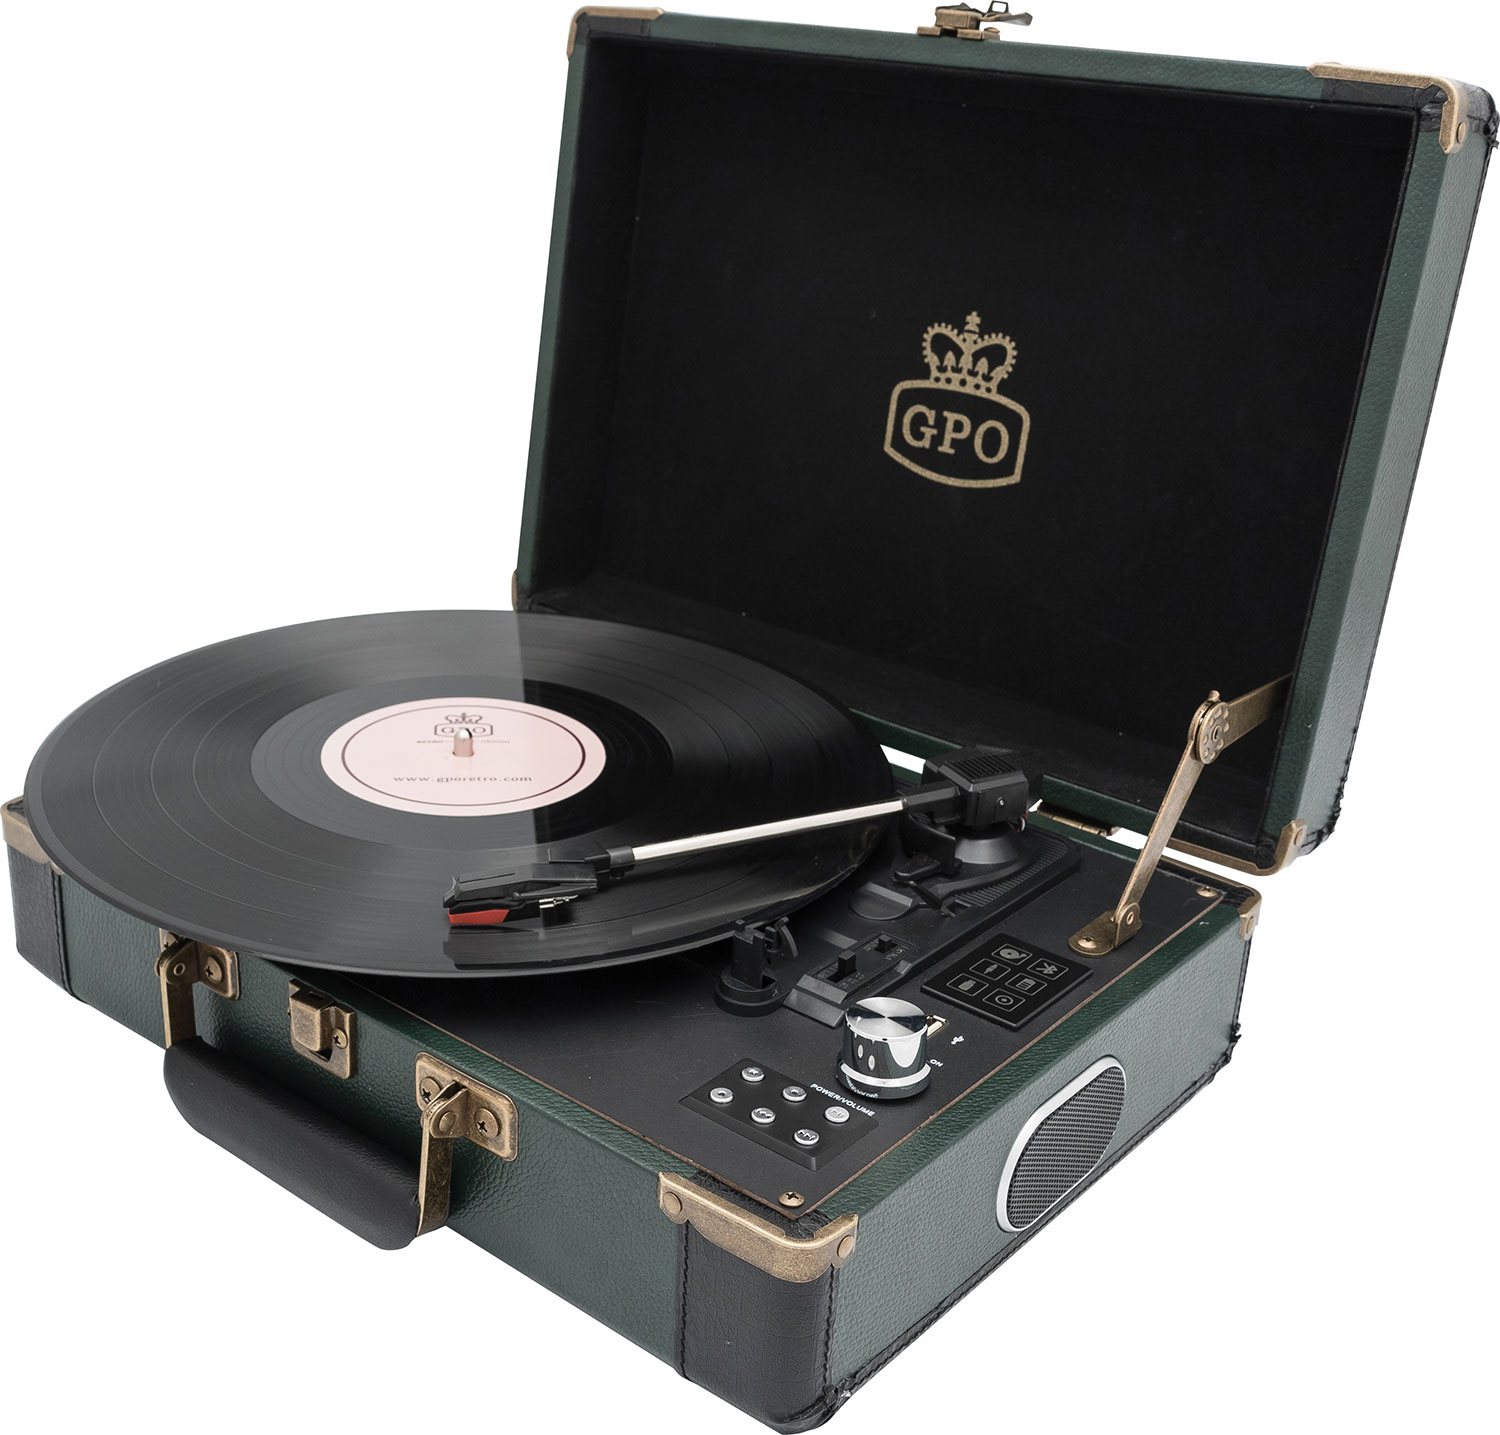 gpo GPO Ambassador Turntable Green/Black